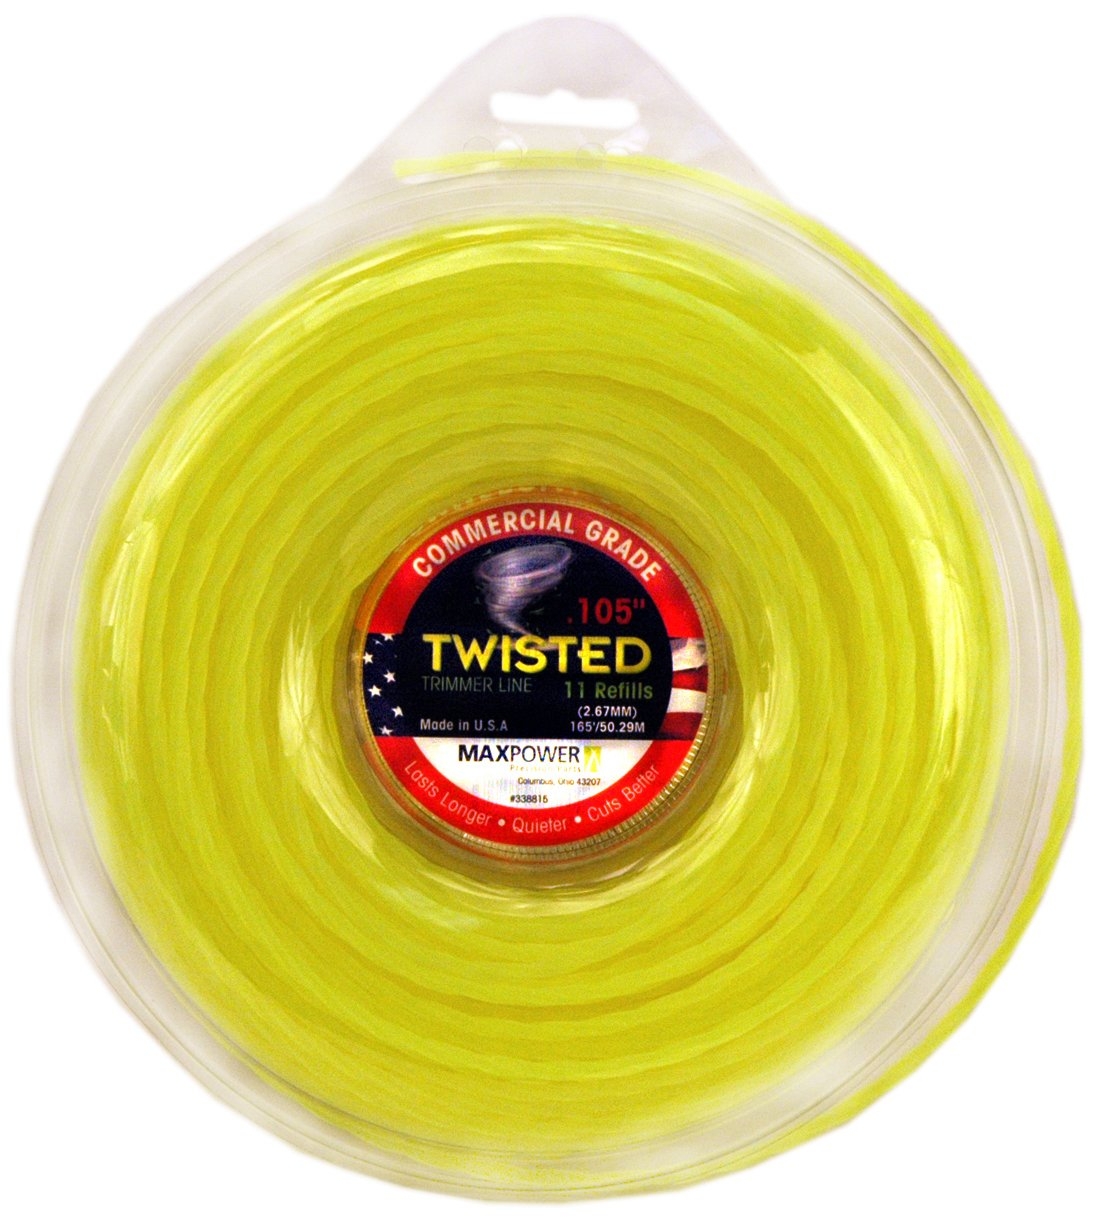 Maxpower 338815 Premium Twisted Trimmer Line .105-Inch Twisted Trimmer Line 165-Foot Length by Maxpower